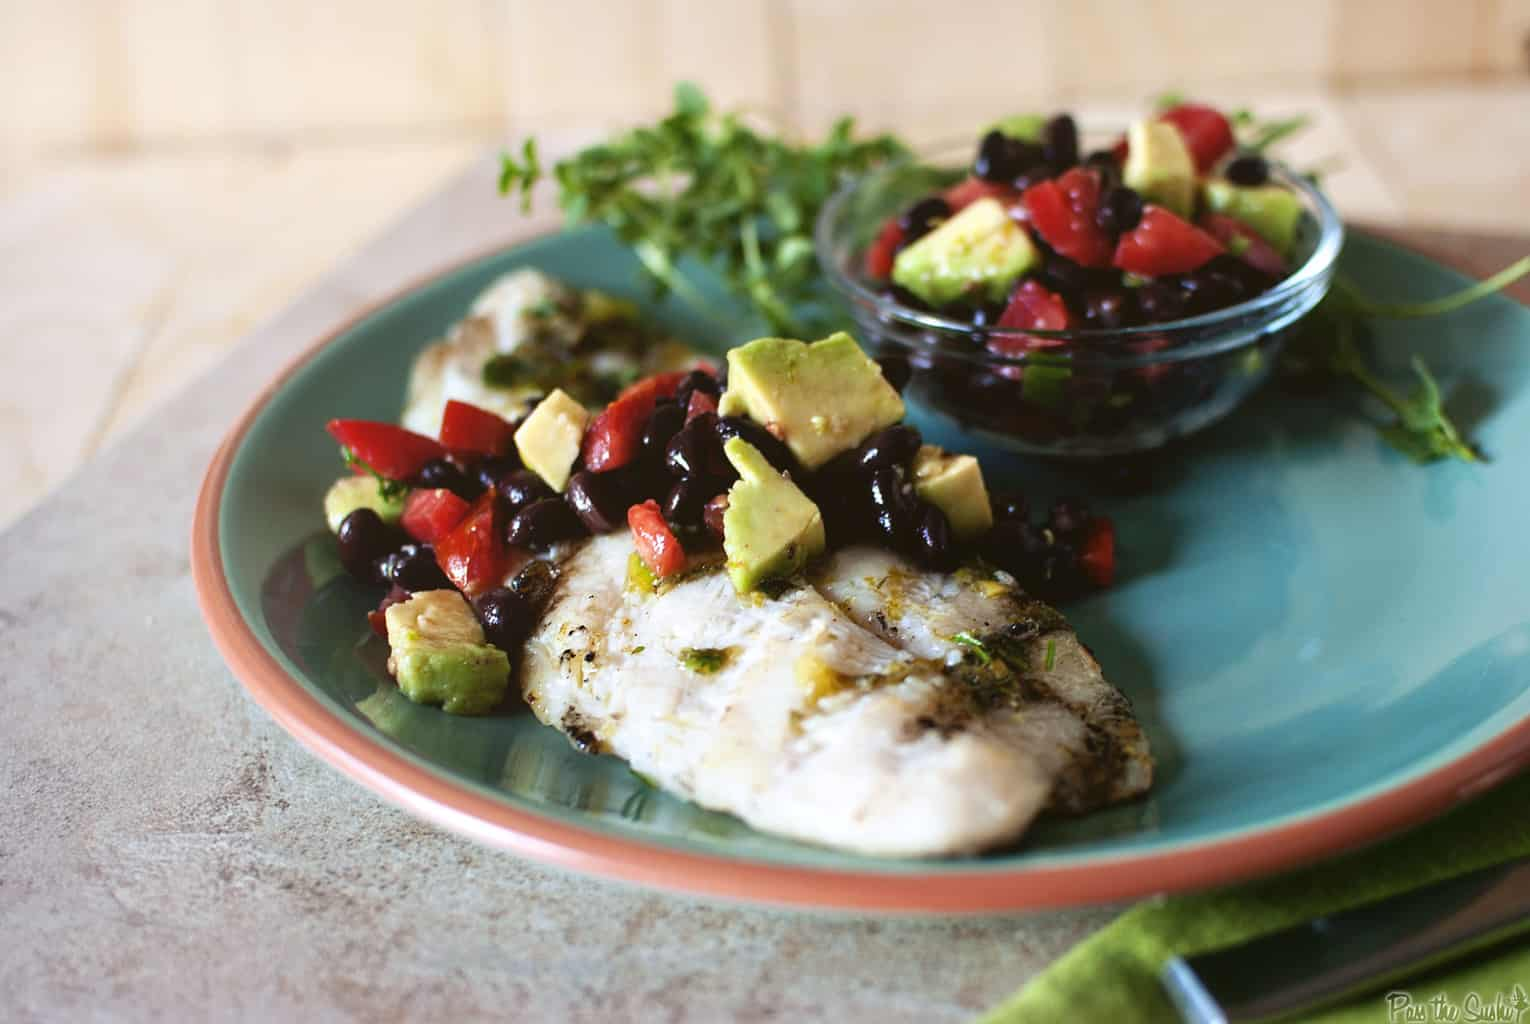 Tilapia with Black Bean and Avocado relish